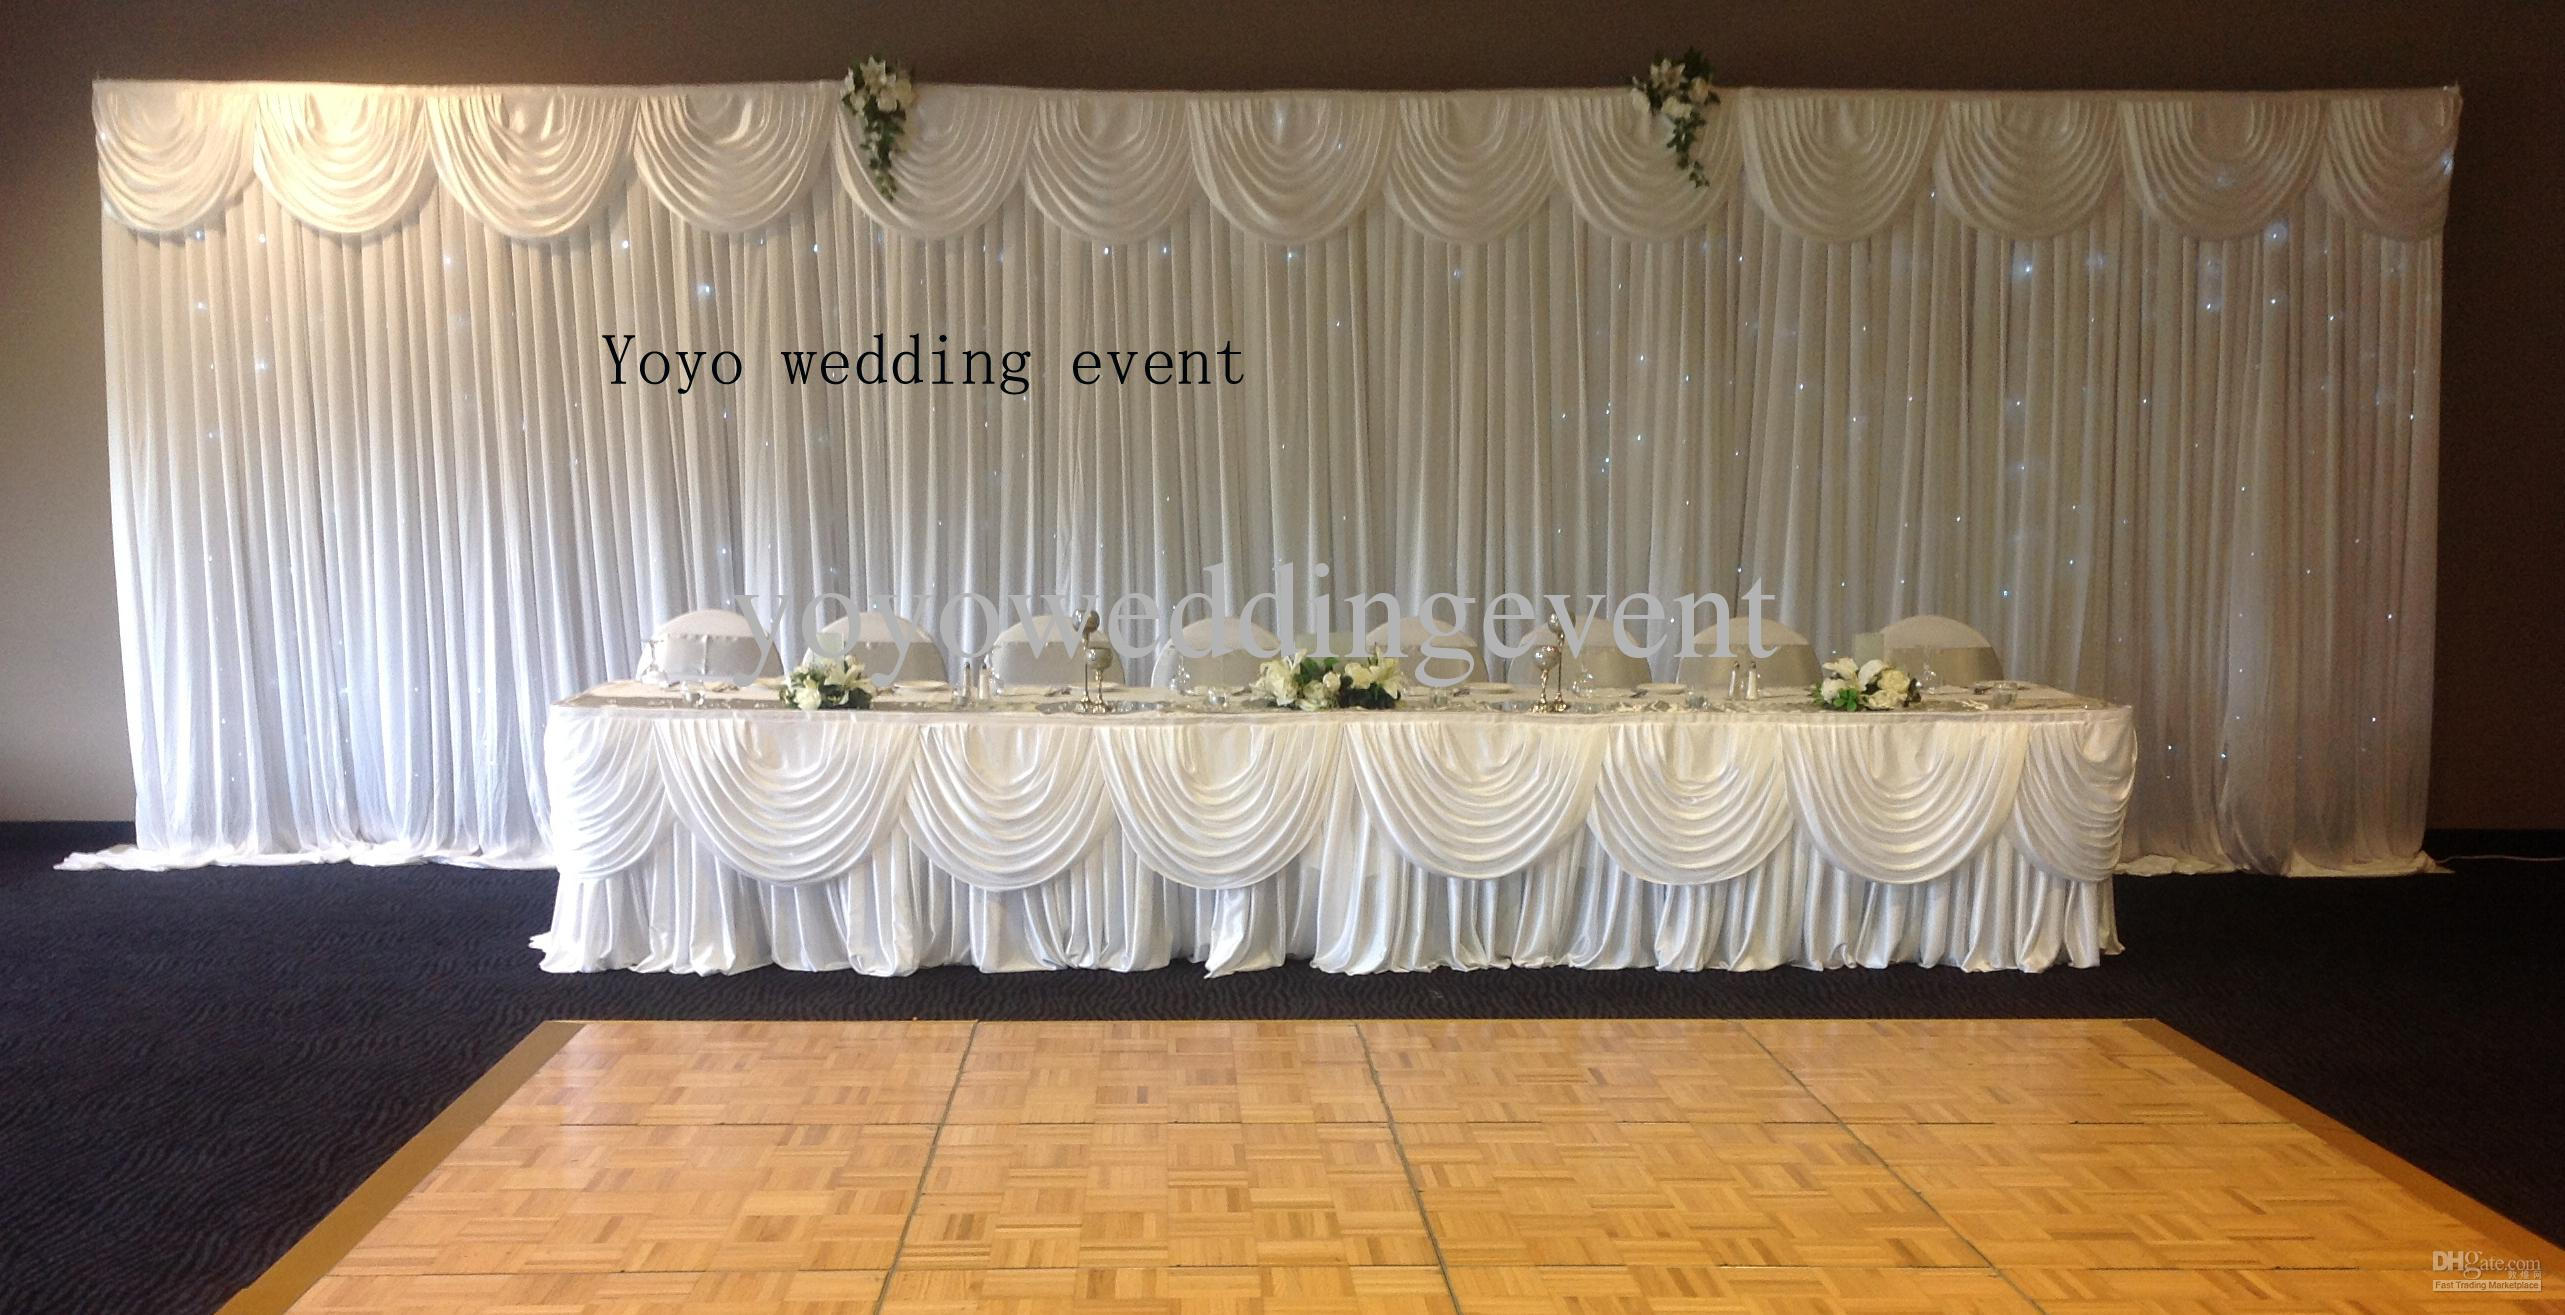 3m Drop9m Length Backdrop Stand Backdrop9m Swag 3m9mLed Curtain Light Led Online With